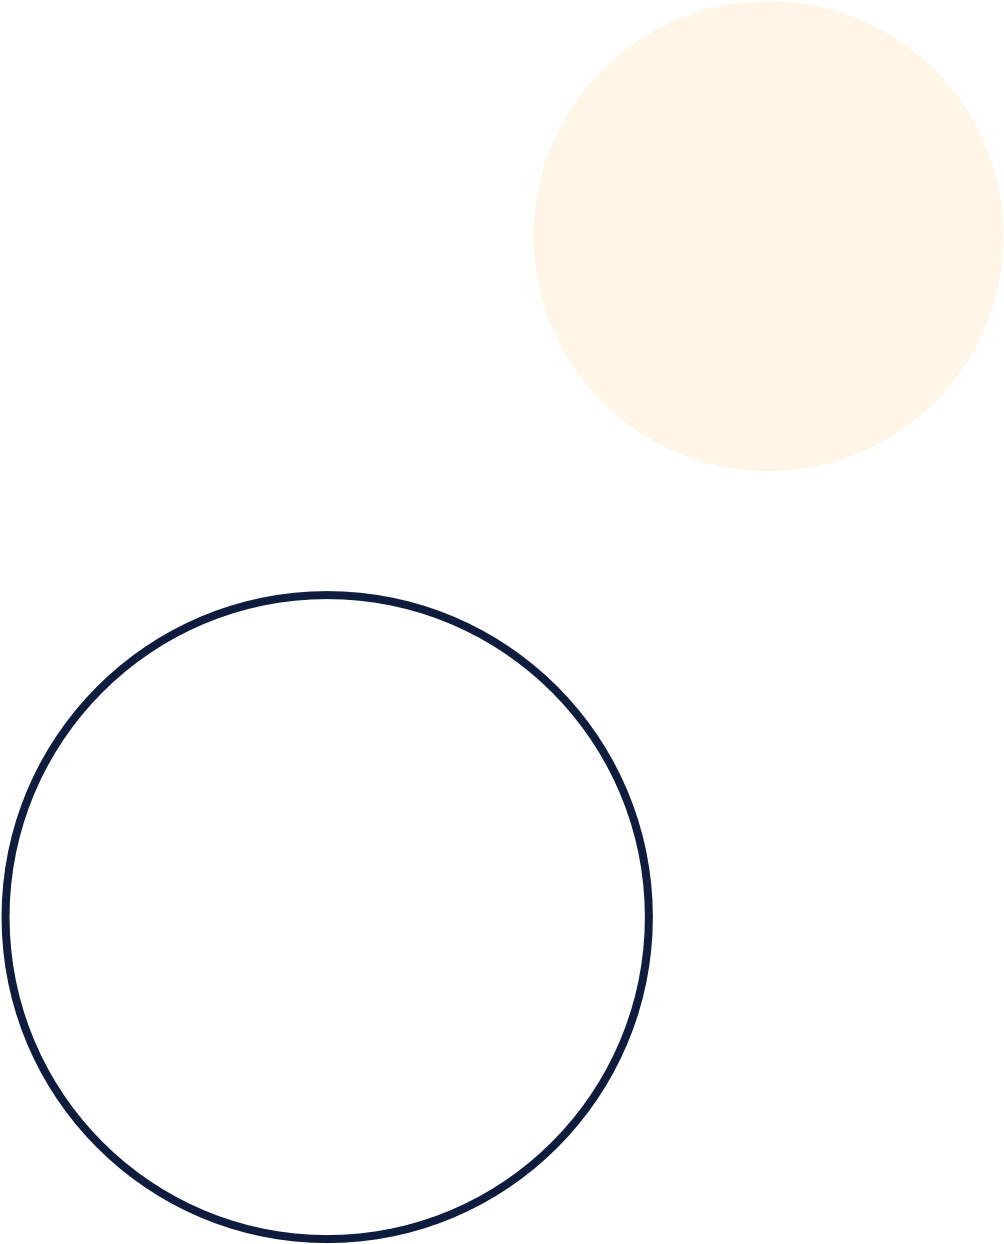 Background image of two circles.